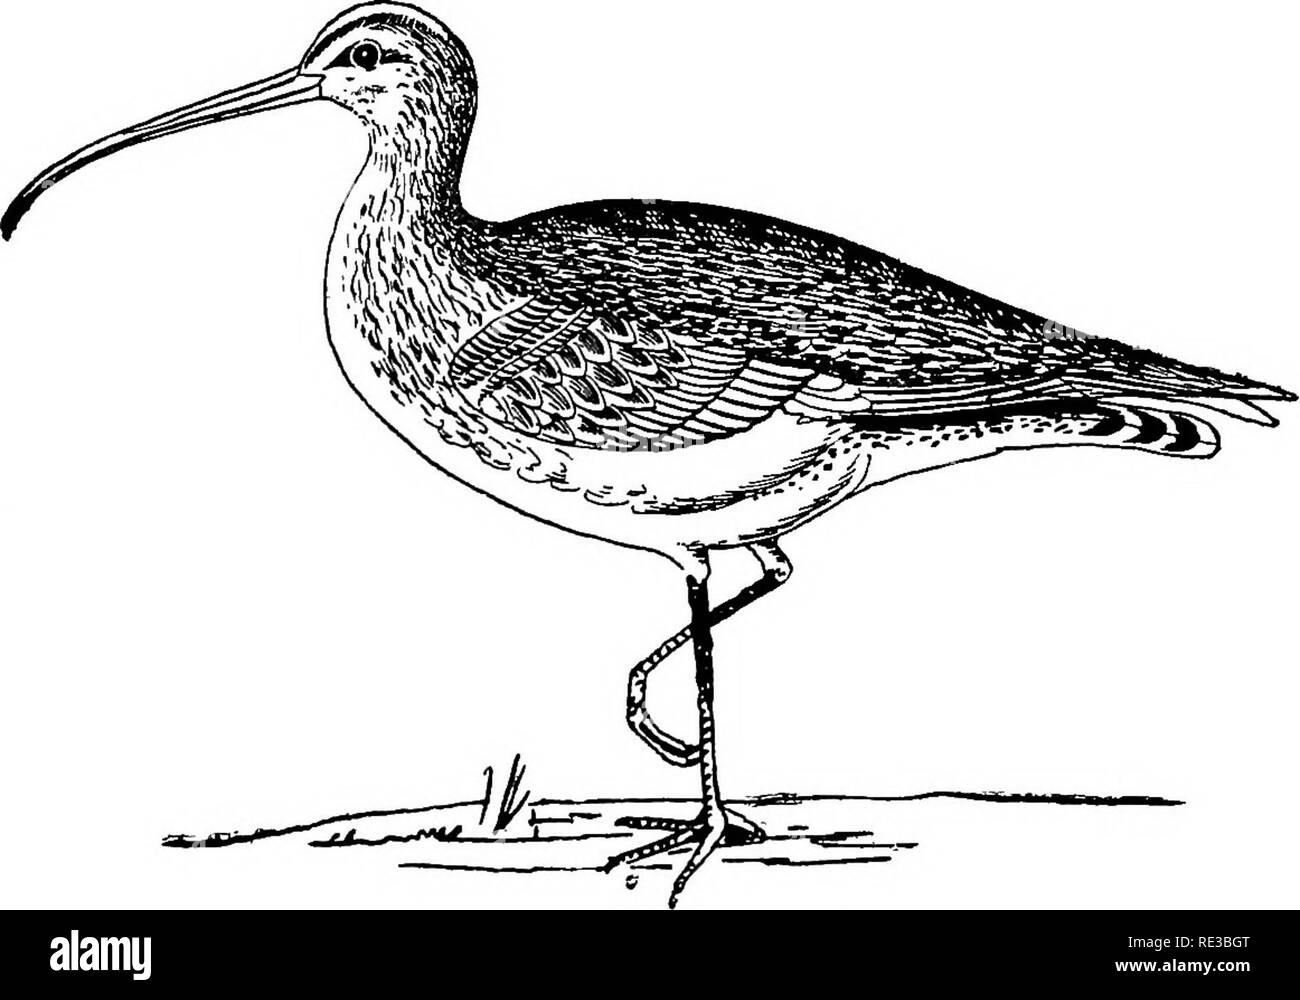 ". Nests and eggs of North American birds. Birds; Birds. 152 NBST8 AND EBOS OF [267.] WHUIBBEL. Nvmenius pbaopus (Linn.) Geog. Dist.—Old W«rW; •ecasional in Greenland. In England and Scotland this bird is known as Wtiimbrel Curlew, ""Half-Cur- lew,"" or Jaxik Curlew. It breeds throughout Northern. Europe and Asia. Though. pretty generally diffused in Great Britain, it is only found breeding in the extreme north of Scotland, on the Orkney and Shetland Islands, where the eggs are hatched by the first part of June. In these places the nests are made on elevated portions of the heath. Durin - Stock Image"